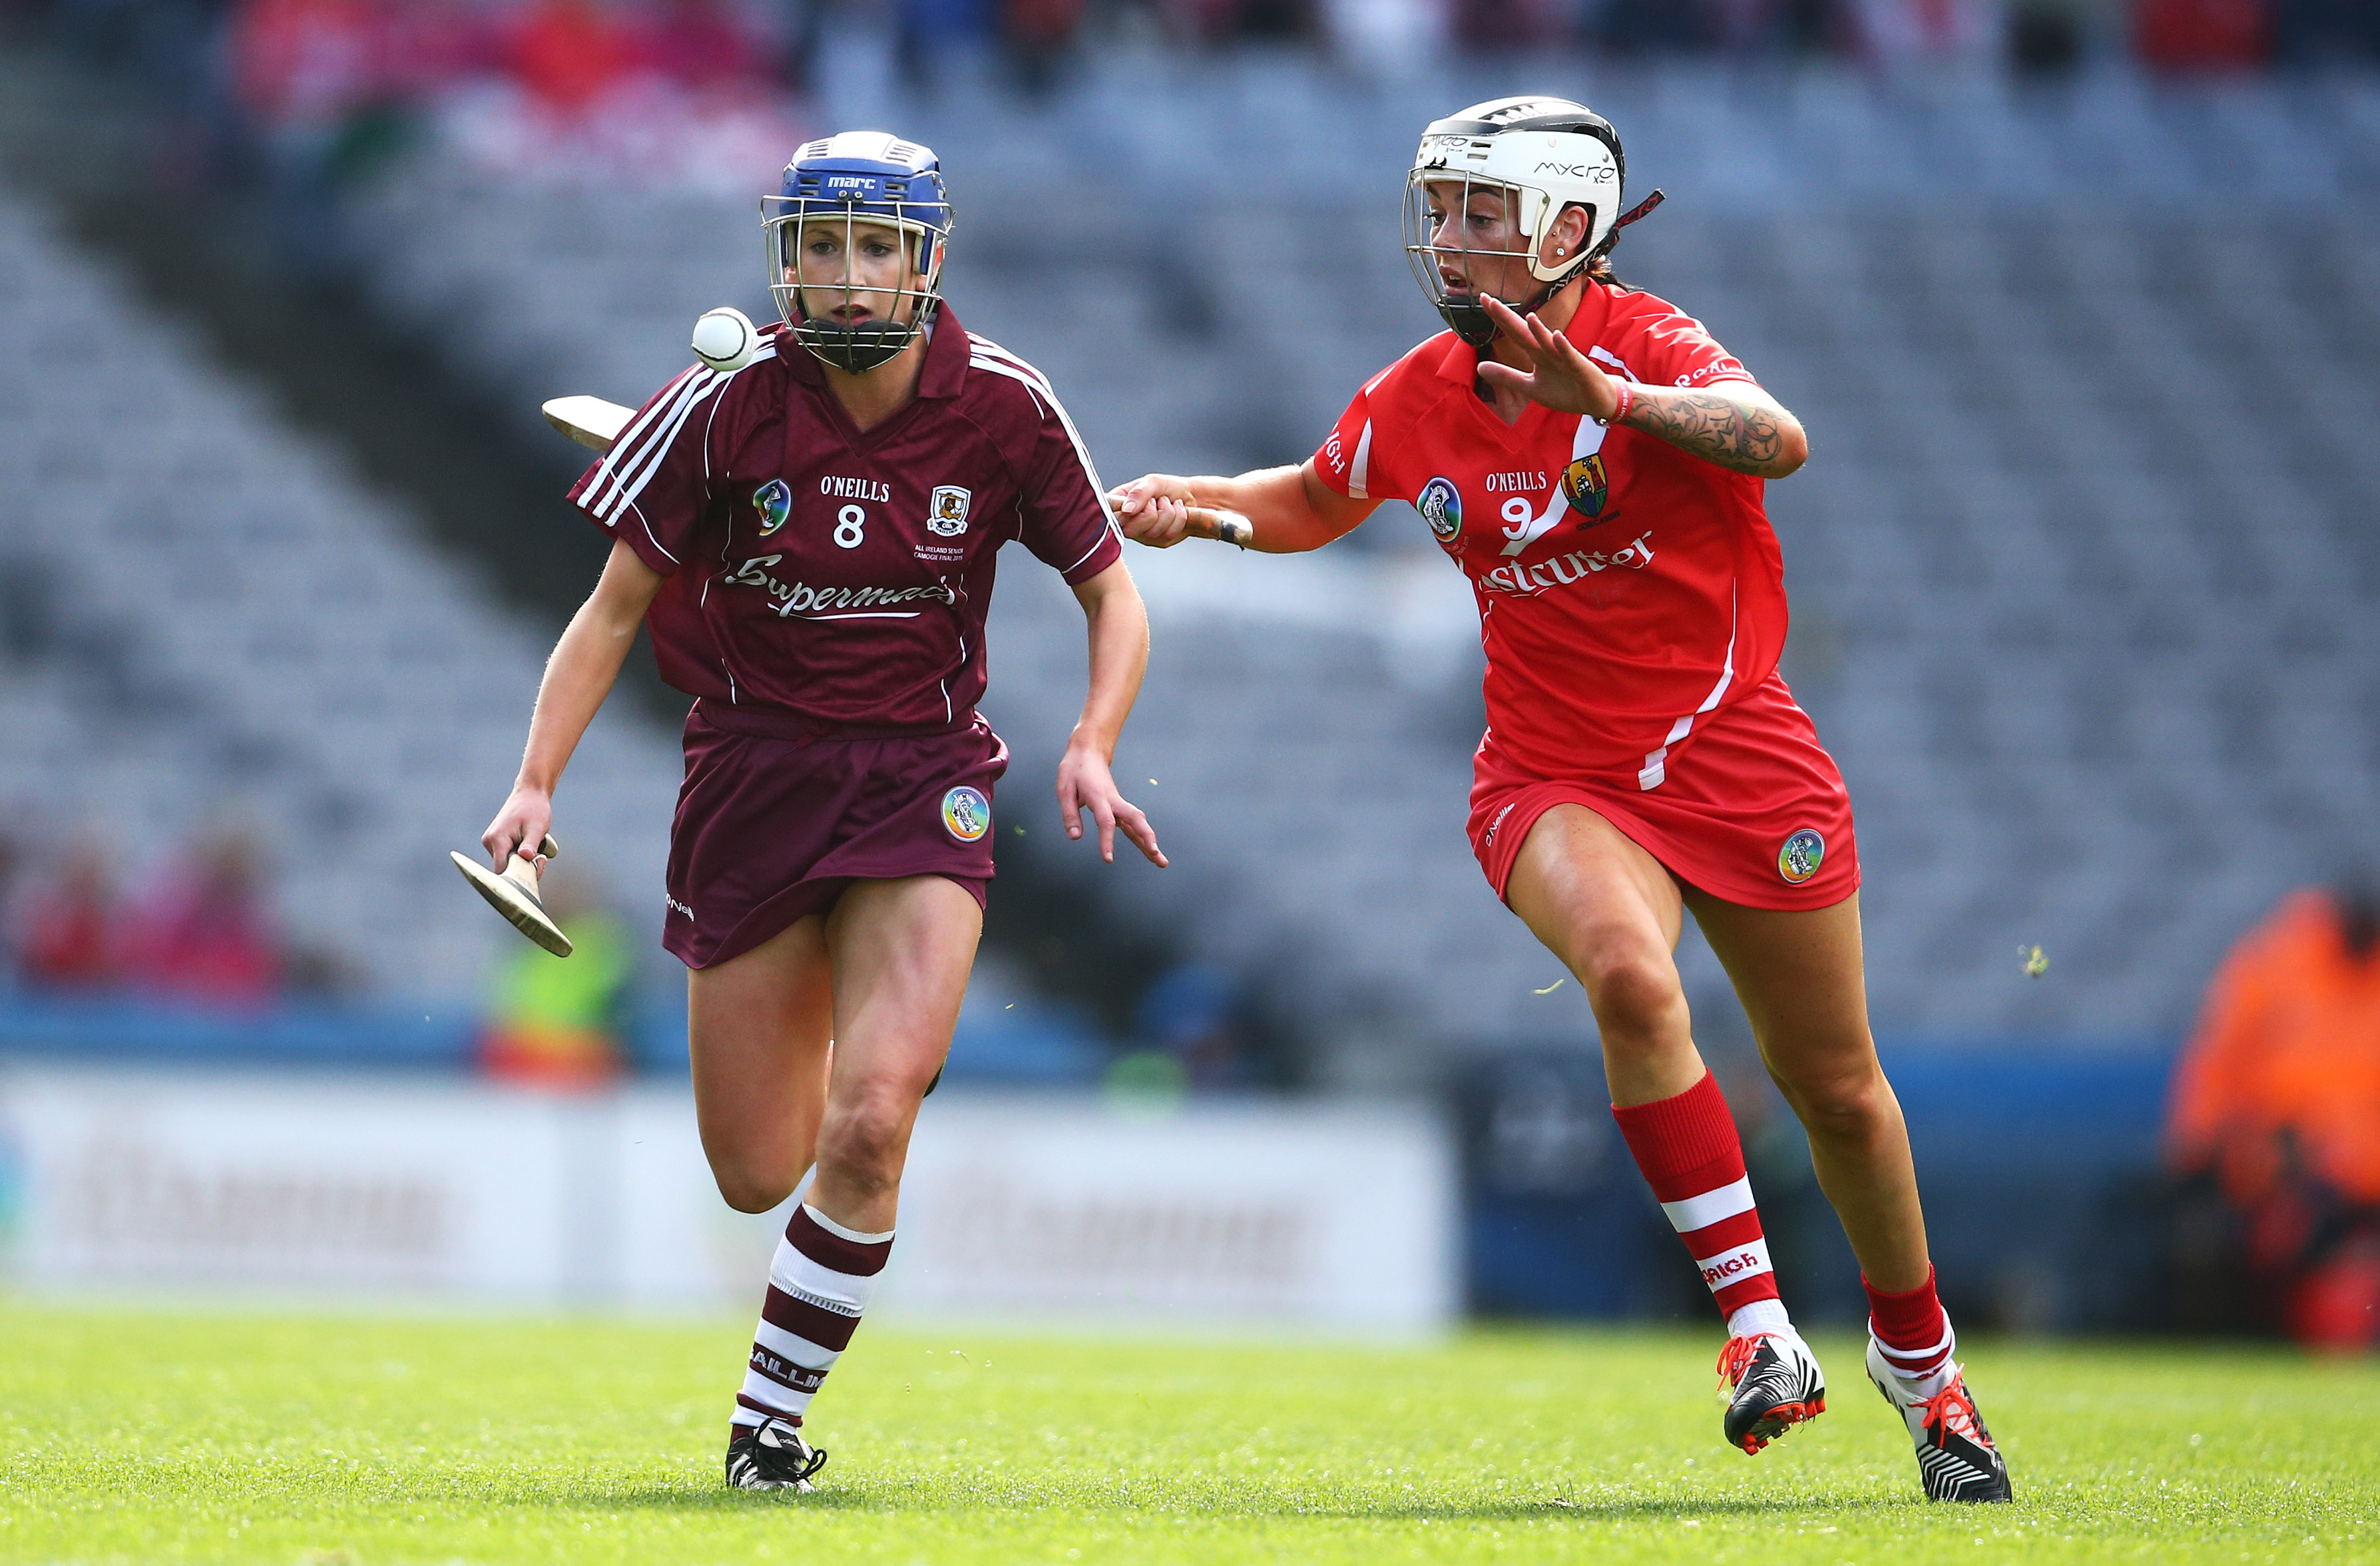 REPRO FREE***PRESS RELEASE NO REPRODUCTION FEE*** Liberty Insurance Senior Camogie Championship Final, Croke Park, Dublin 13/9/2015 Cork vs Galway Cork's Ashling Thompson and Niamh Kilkenny of Galway Mandatory Credit ©INPHO/Cathal Noonan